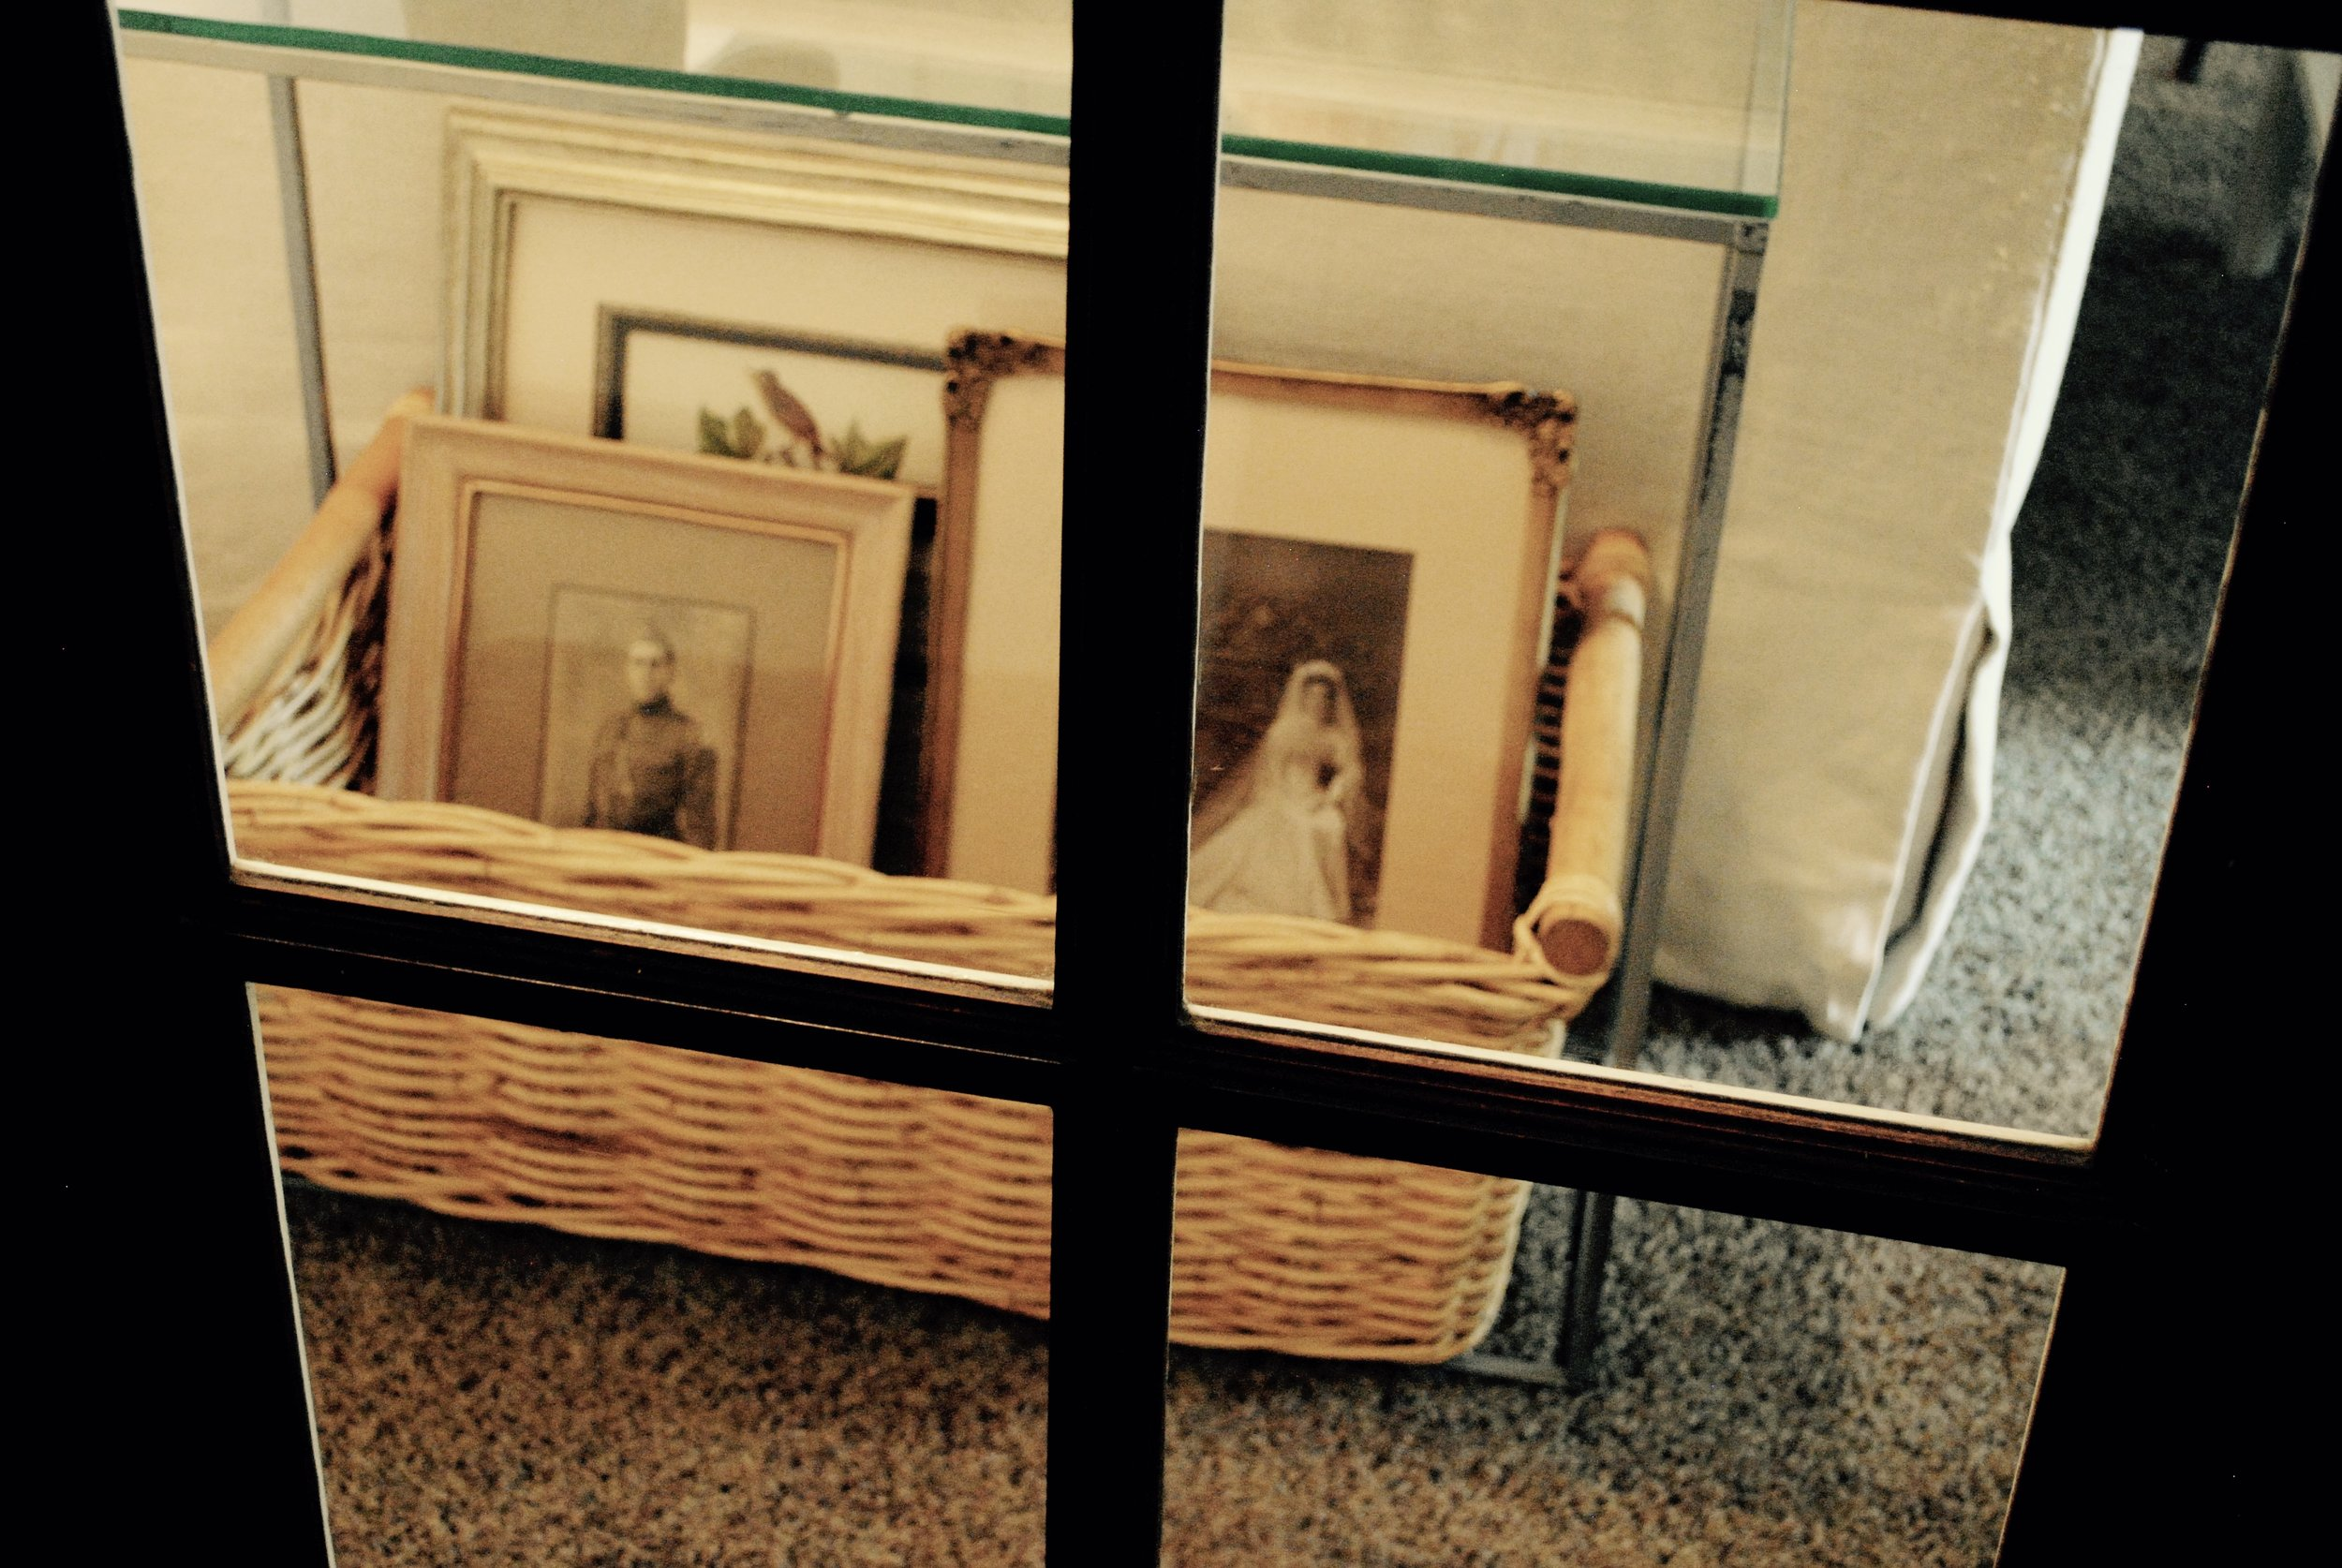 A basket seen through the french doors holds portraits of my paternal grandfather in his World War I uniform and my grandmother, Beth Campbell, in her wedding dress.